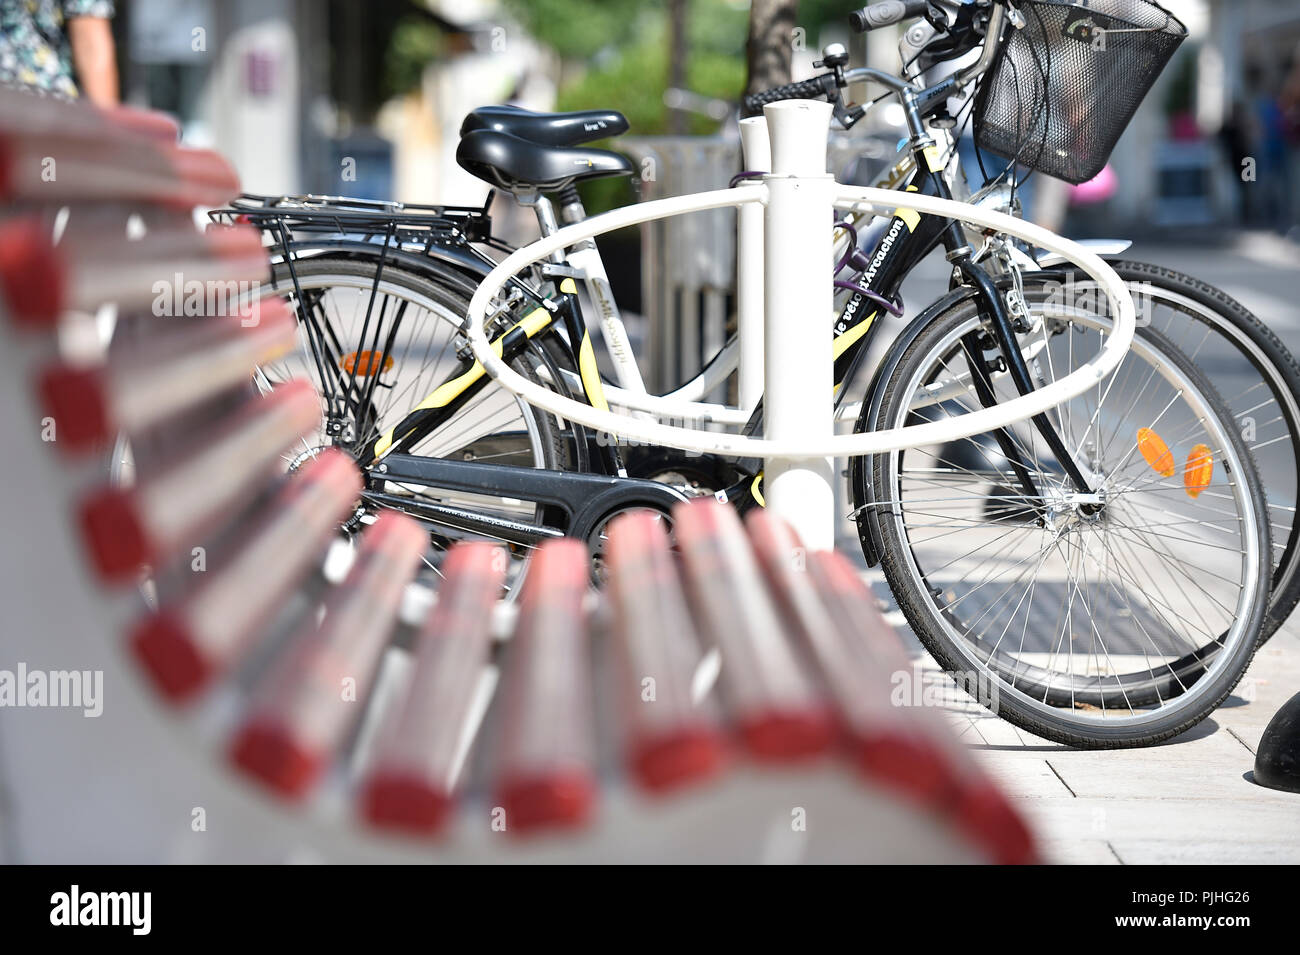 France , Arcachon, downtown, a red bench in the foreground and blur . Station bicycle attachment , in the background - Stock Image